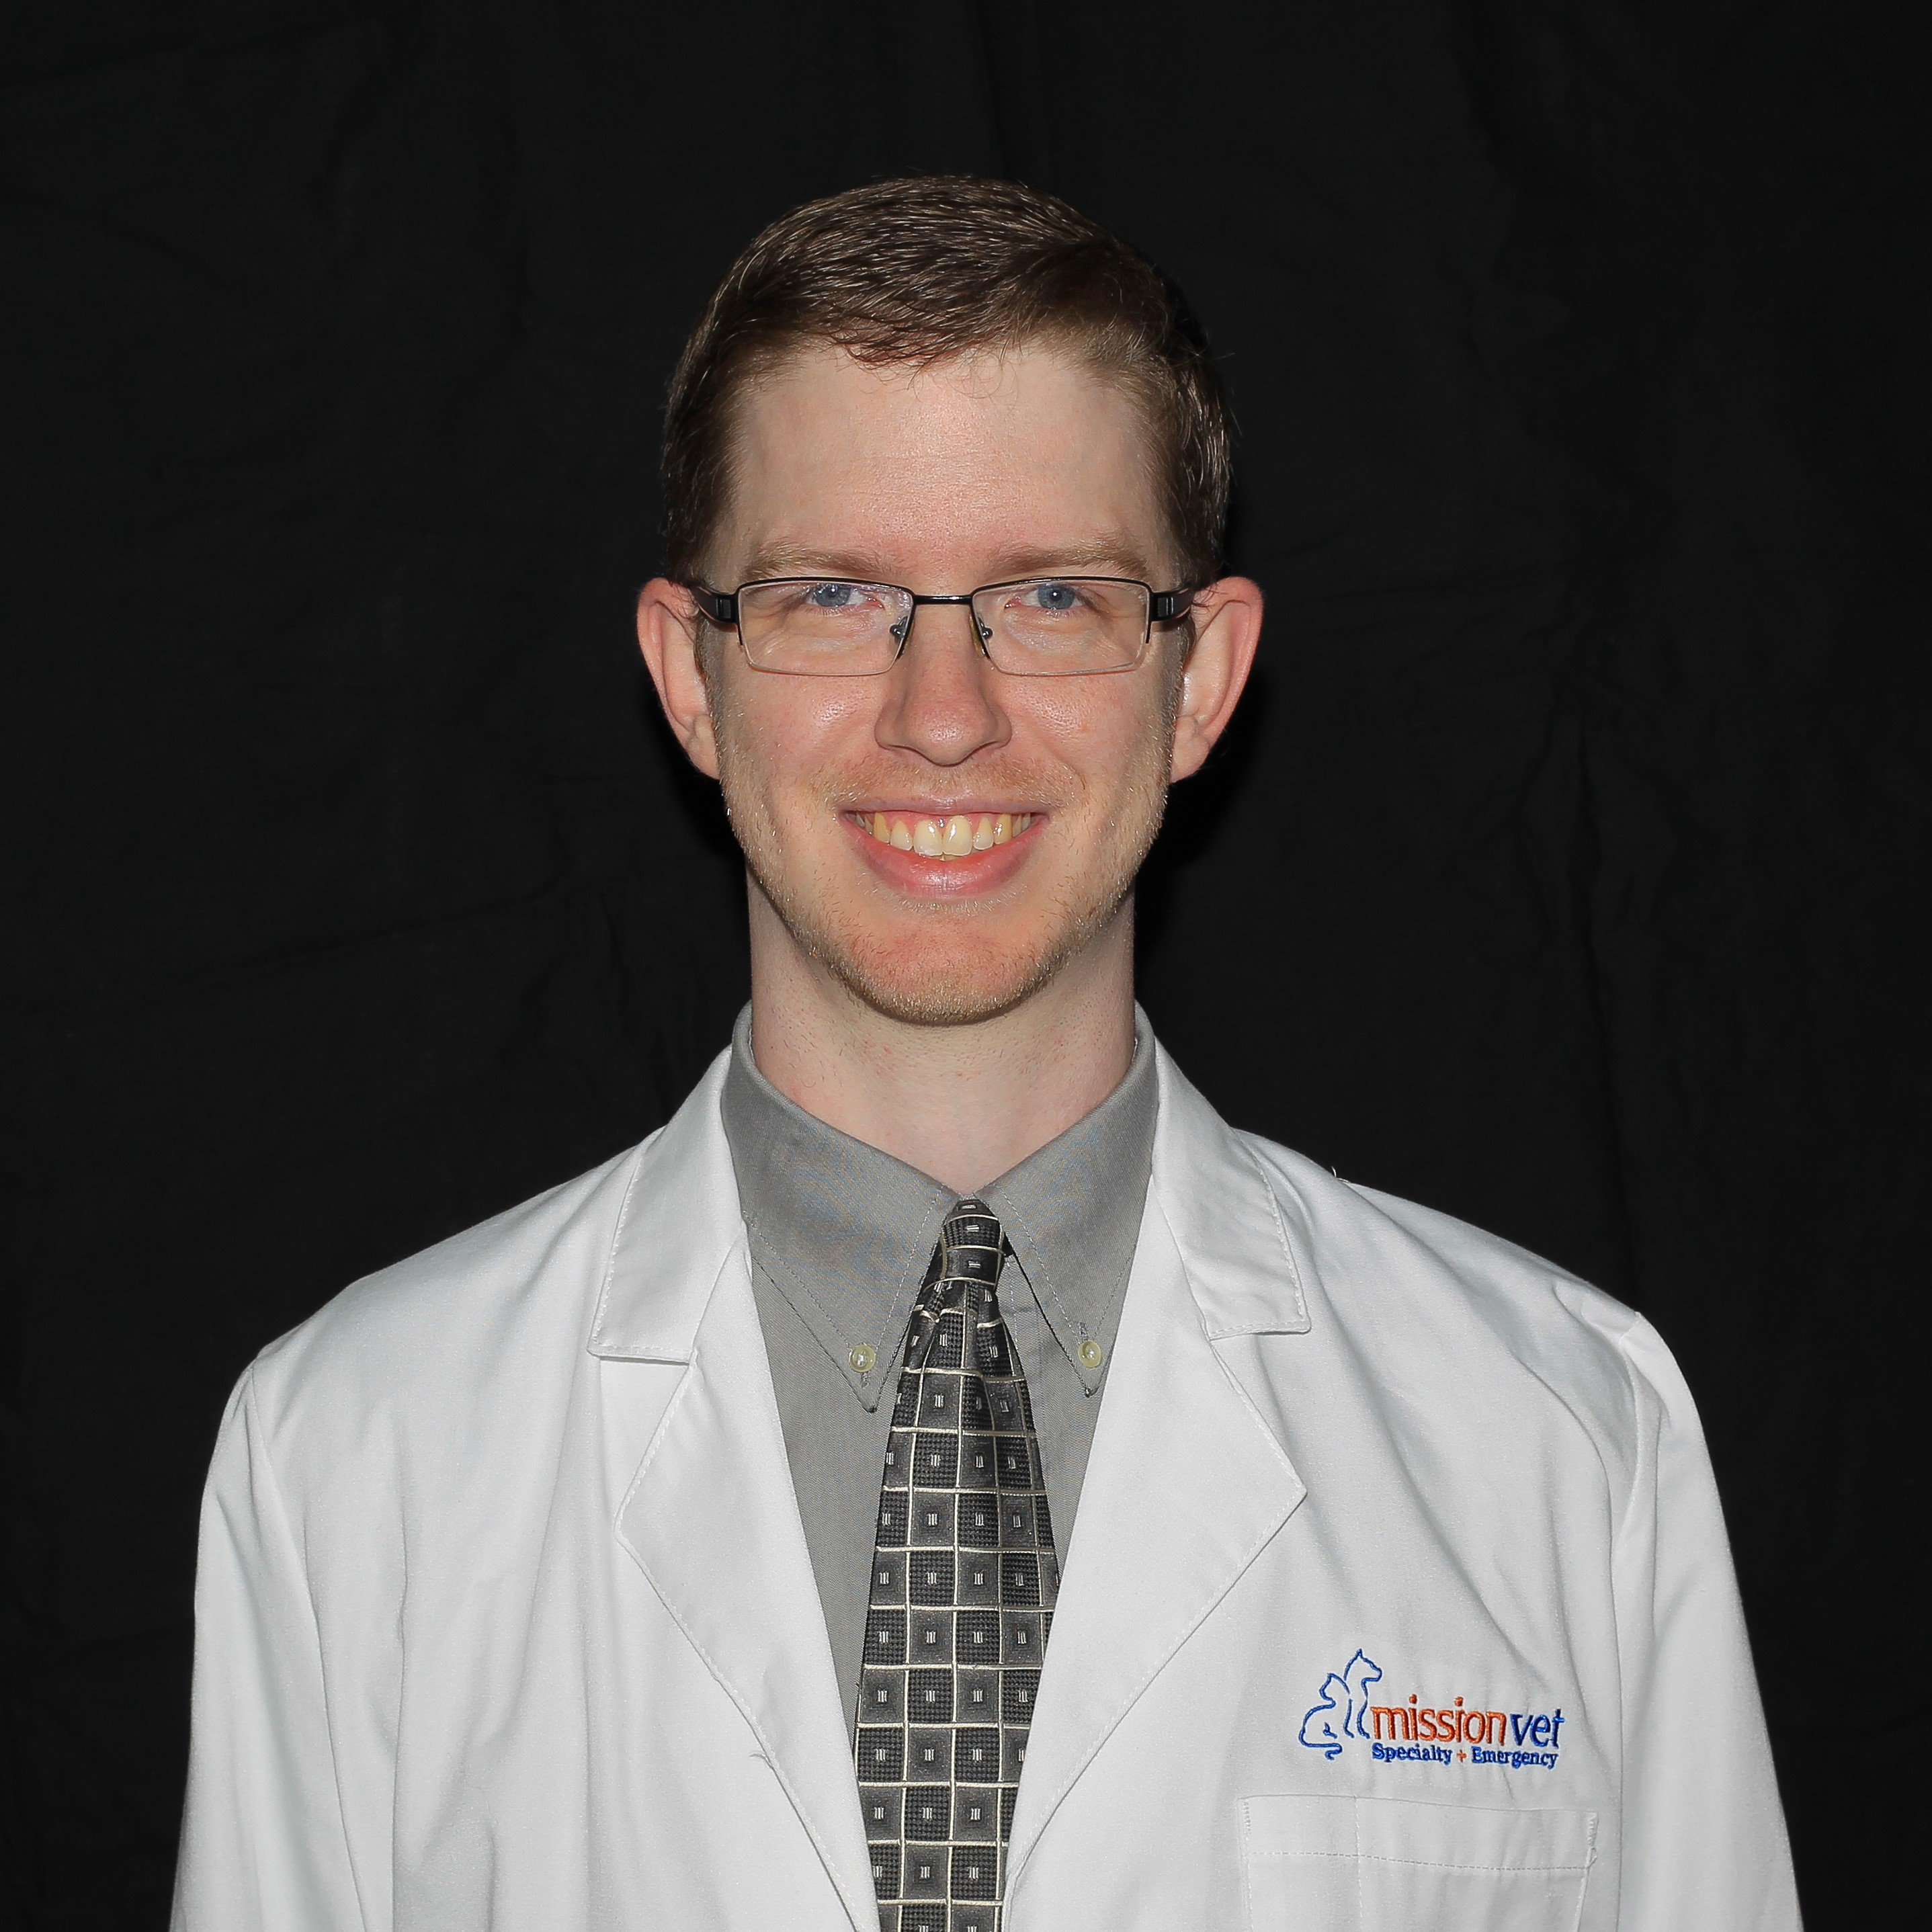 Grant D. Ramsey, DVM (Practice Limited to Internal Medicine)